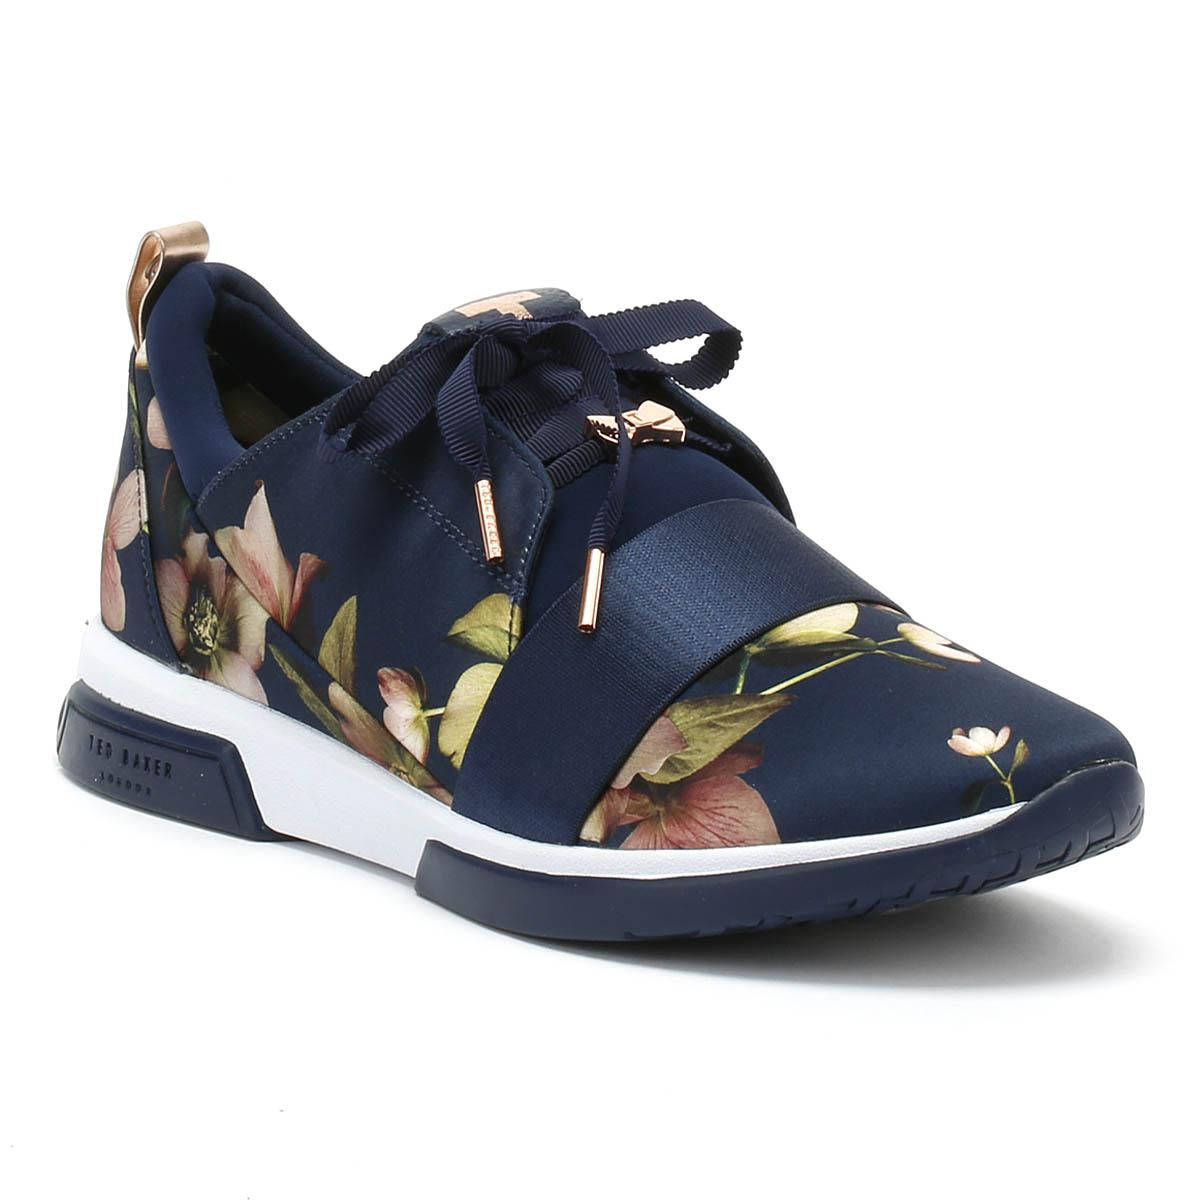 d3cba68e8787c7 Ted Baker Womens Arboretum Navy Cepap 2 Trainers in Blue - Lyst